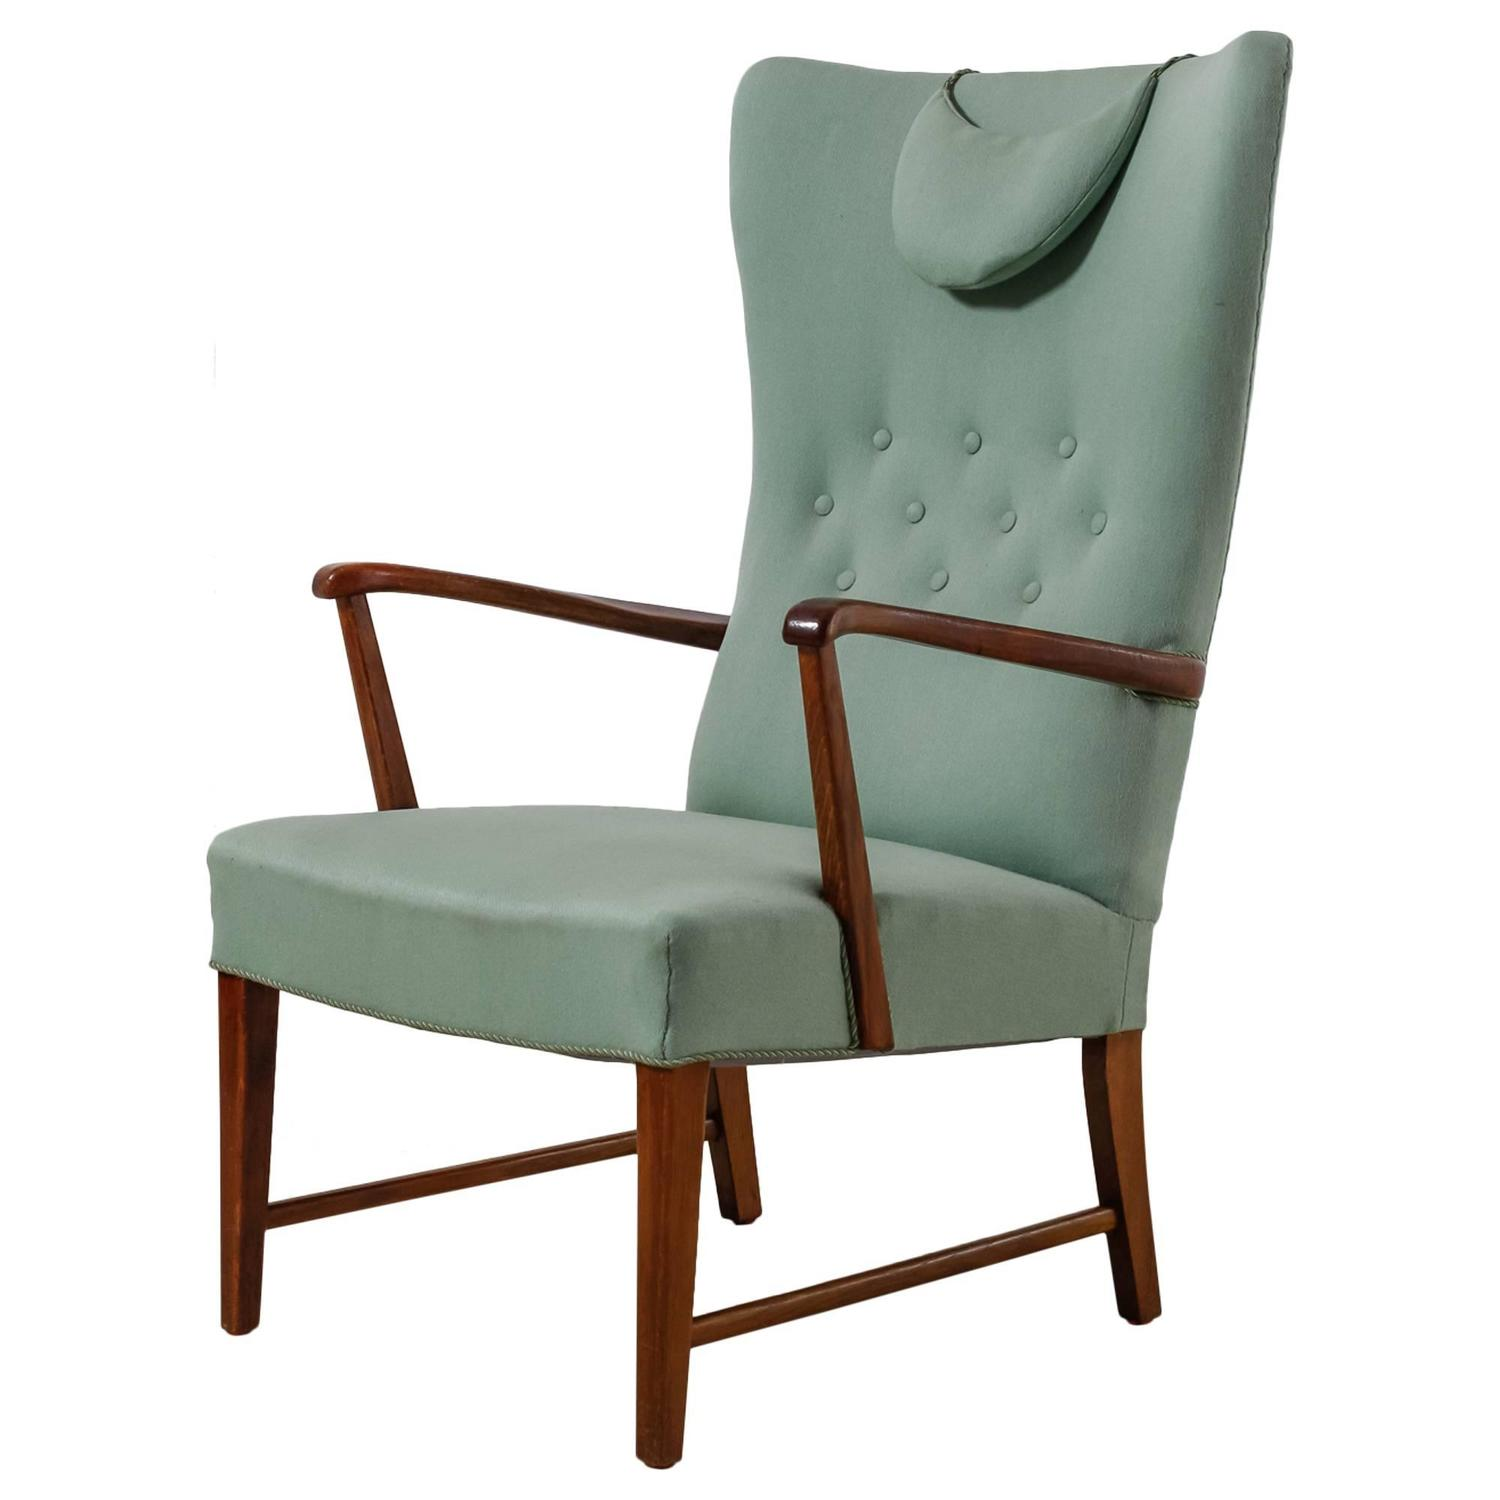 Danish High Back Lounge Chair With Mint Green Wool Upholstery, 1940s For  Sale At 1stdibs